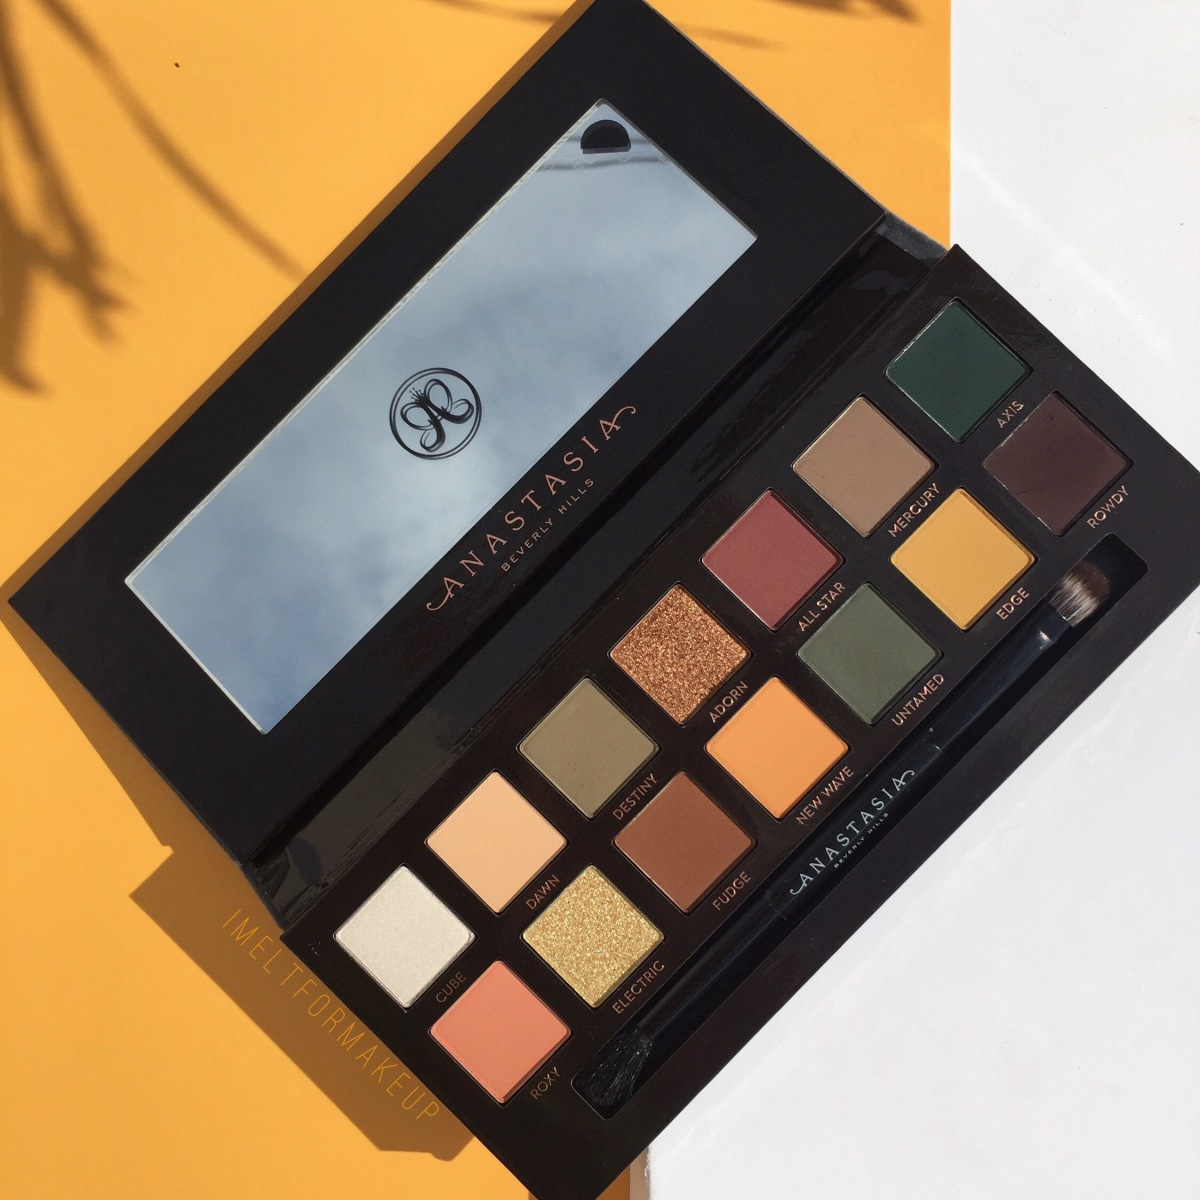 ABH Subculture Palette Review & Swatches